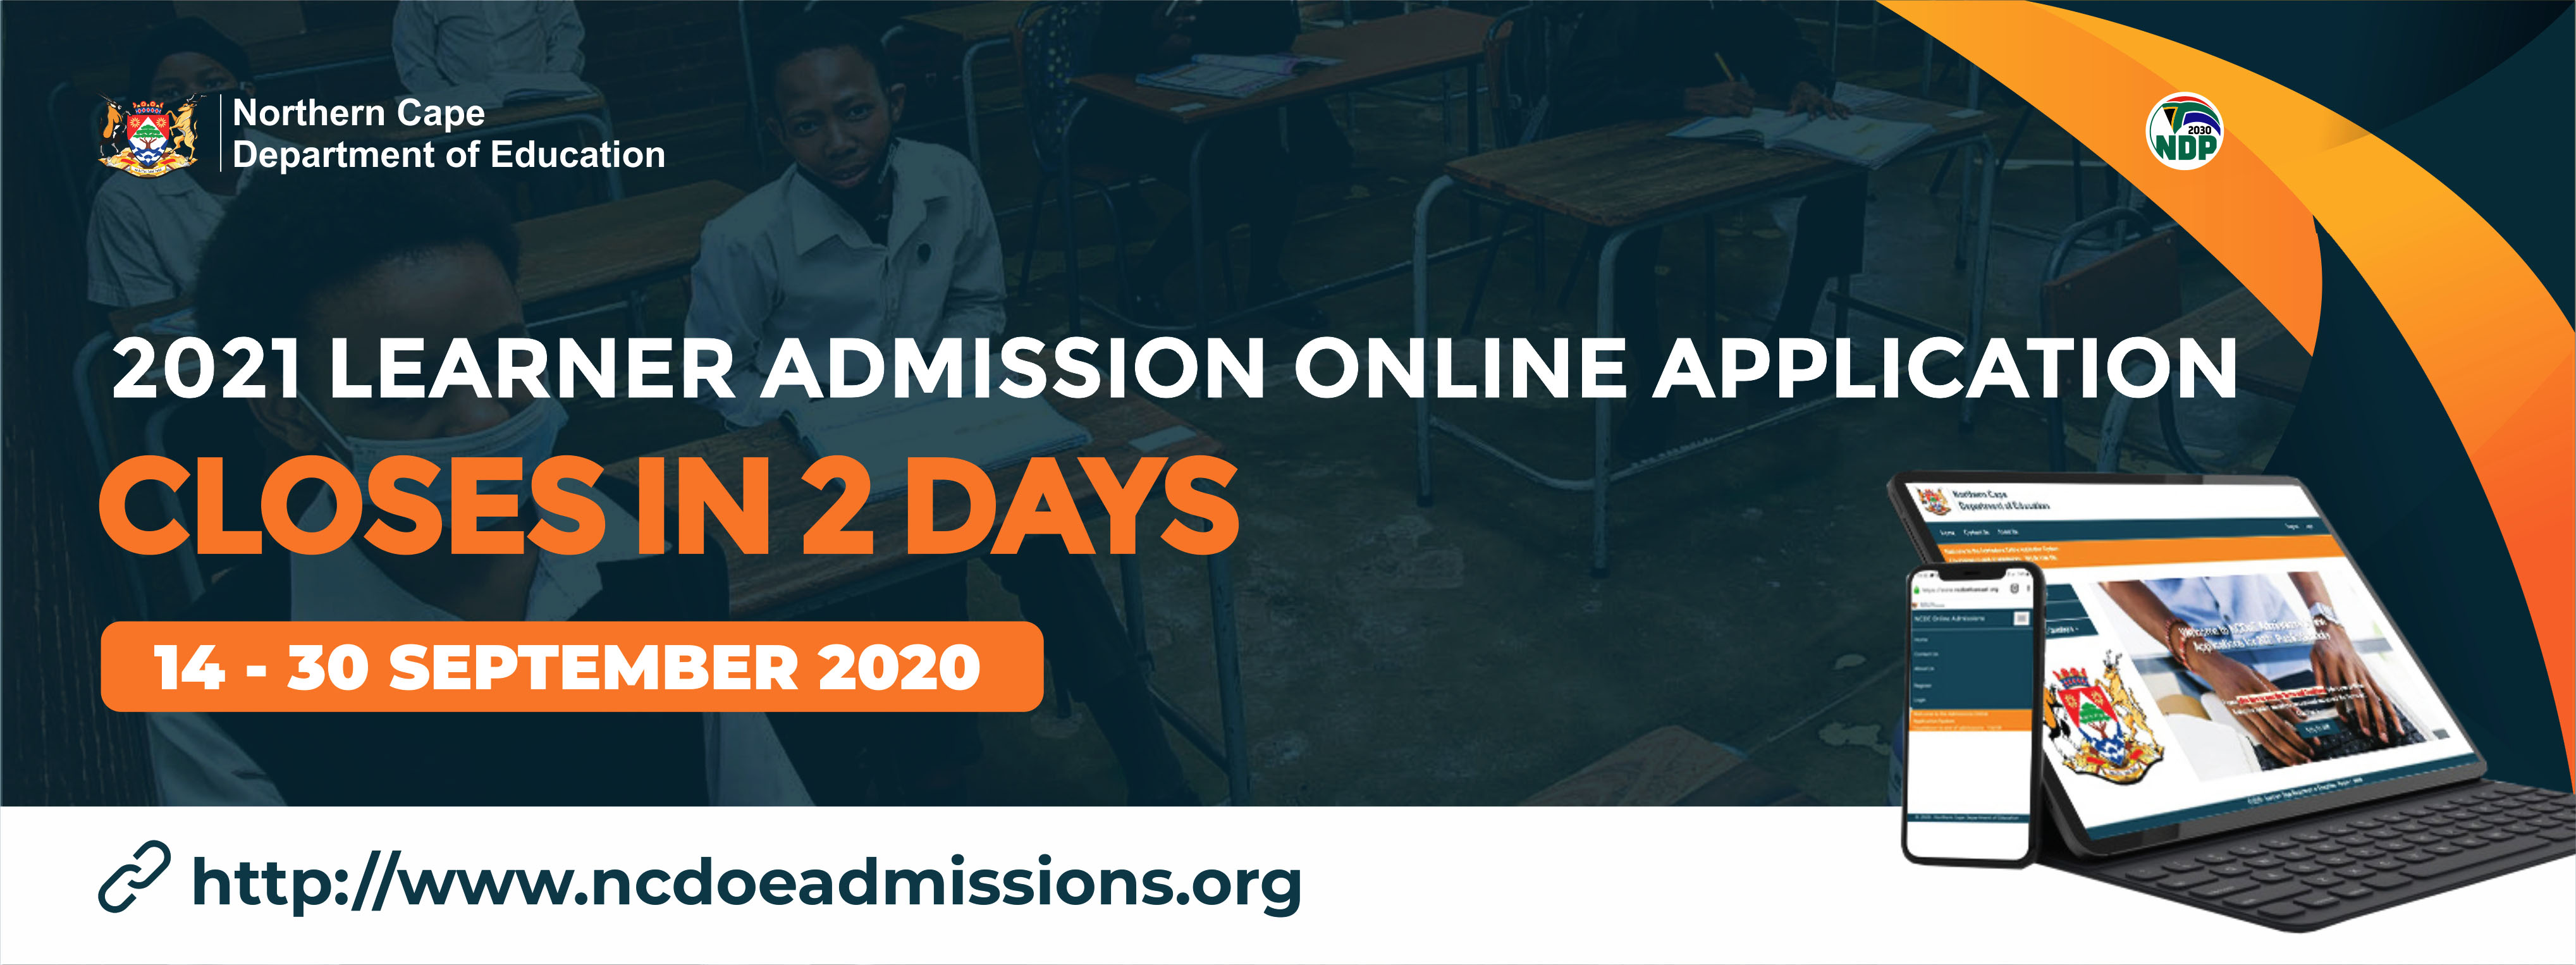 Online learner admissions closing in 2 days.